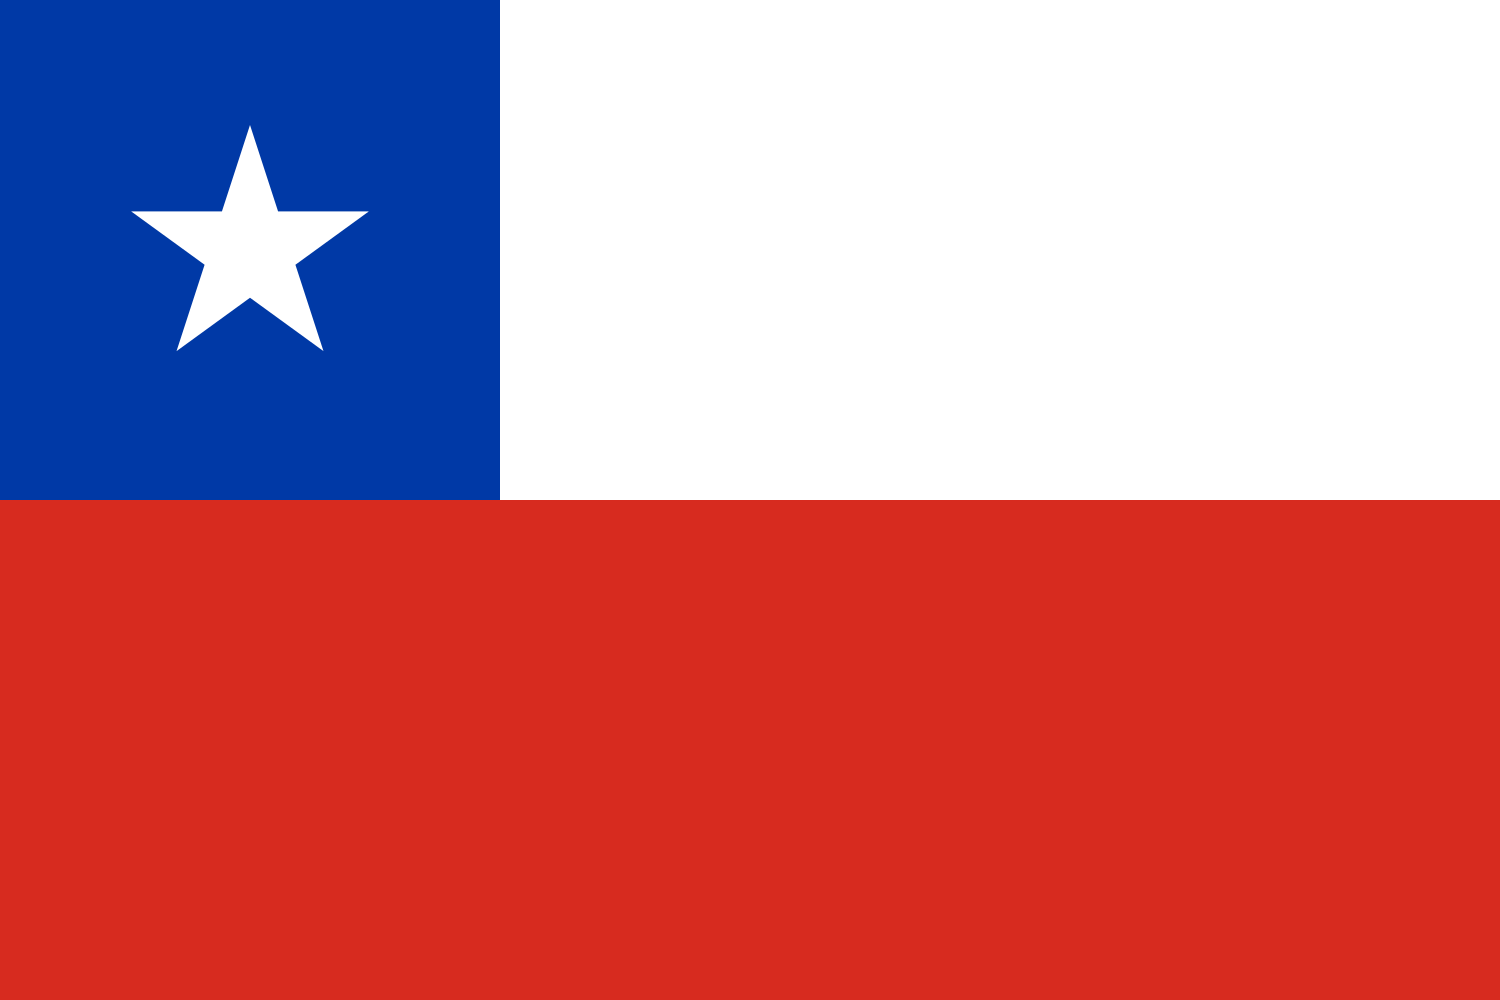 Celebrating our diversity! Chile